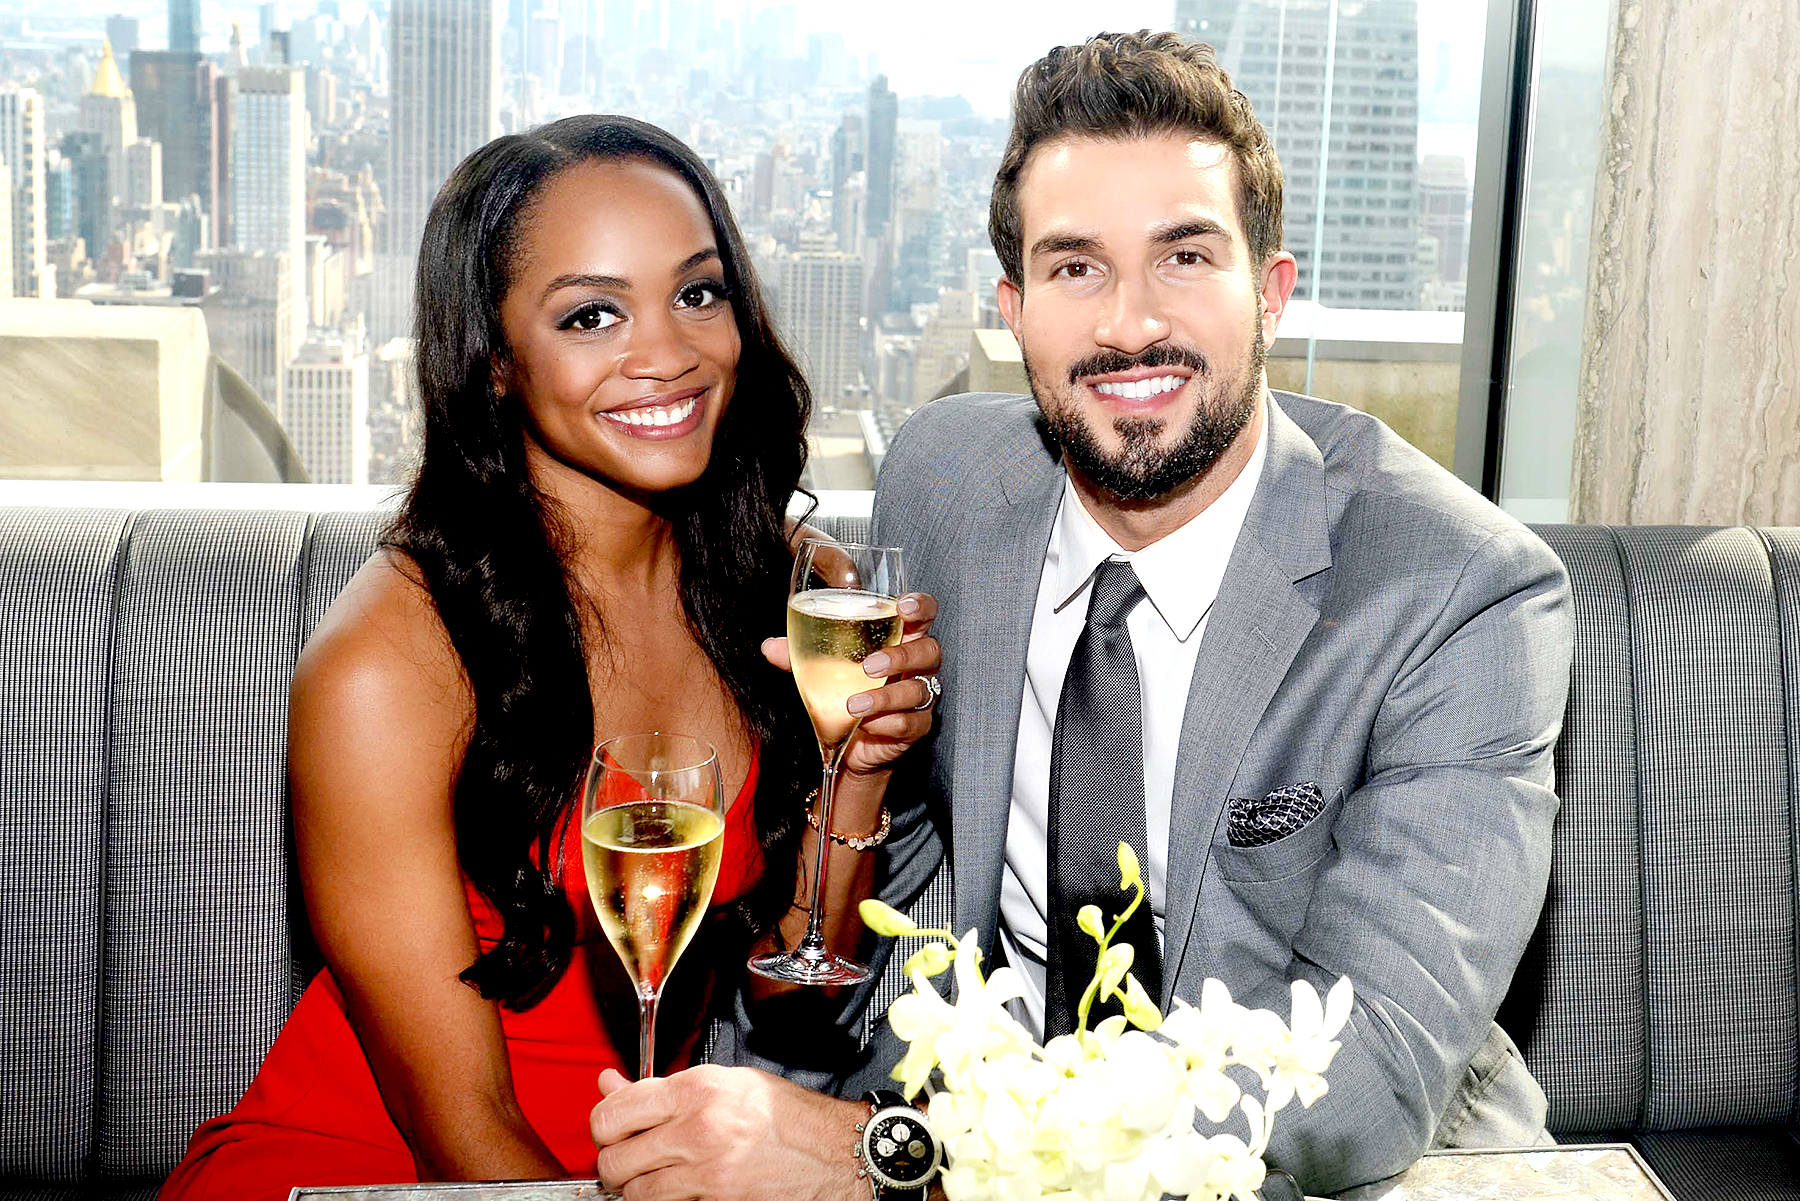 Rachel Lindsay and Bryan Abasolo celebrating their engagement overlooking beautiful views at Bar SixtyFive at the Rainbow Room on August 8, 2017.